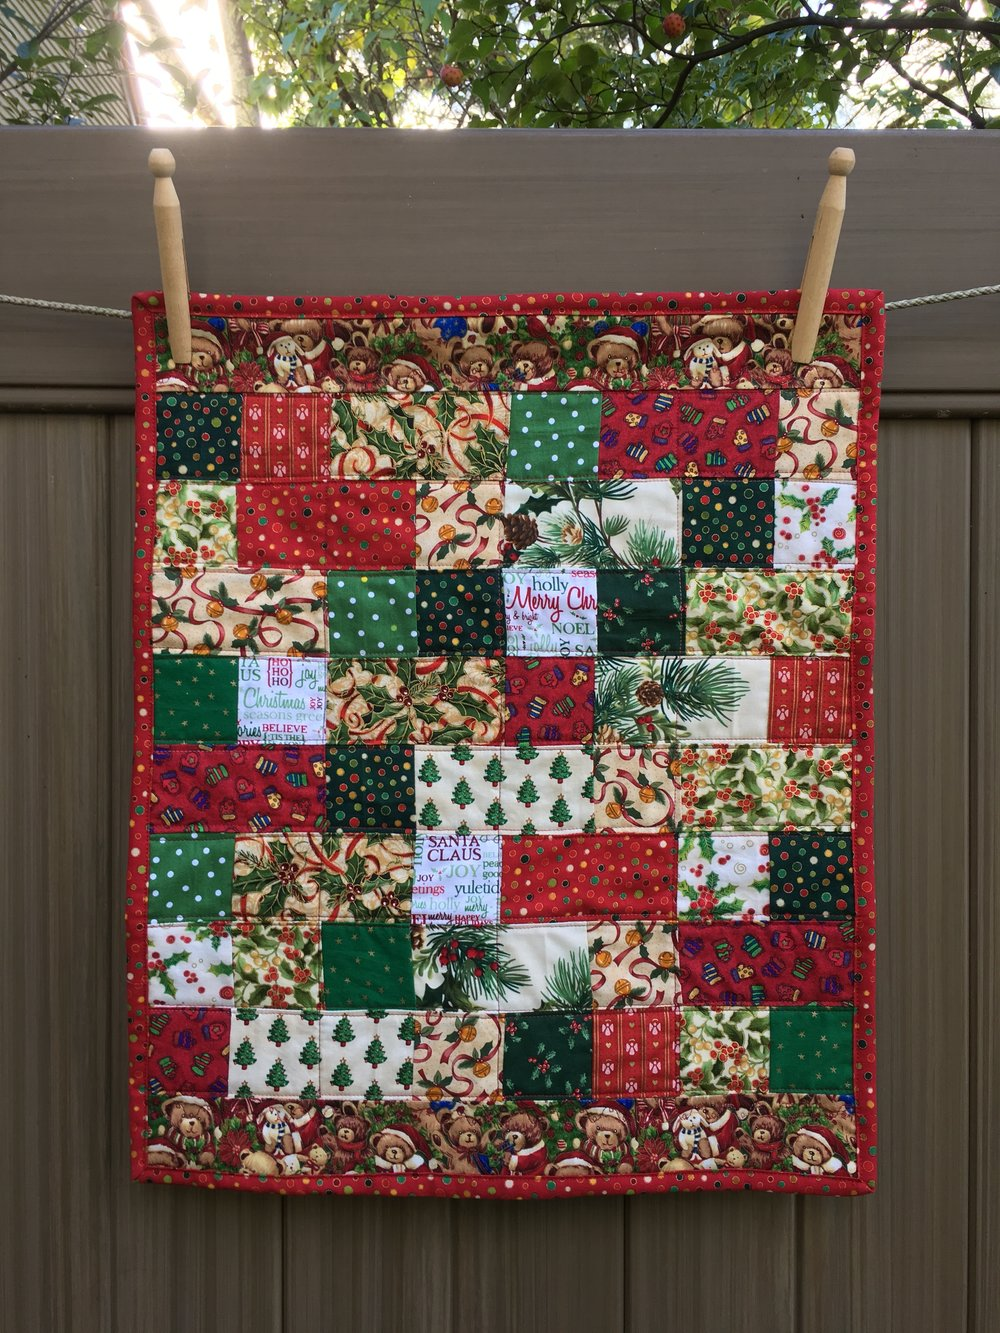 Doll sized Christmas Quilt. 16 1/2 x 20 inches